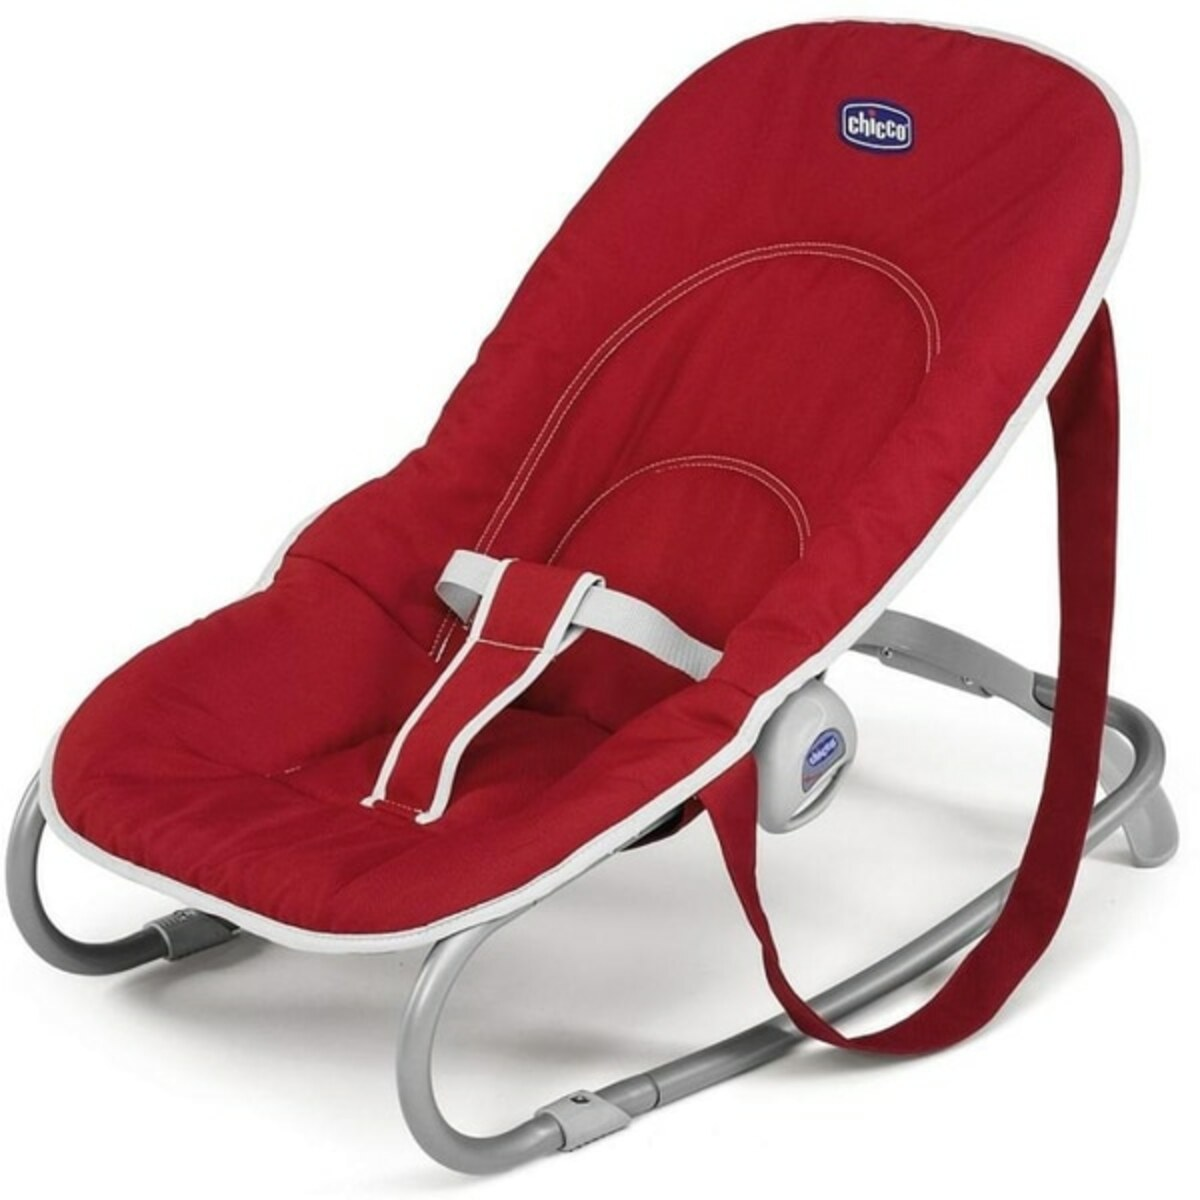 Bild 2 von Chicco - Babywippe Easy Relax, Rot